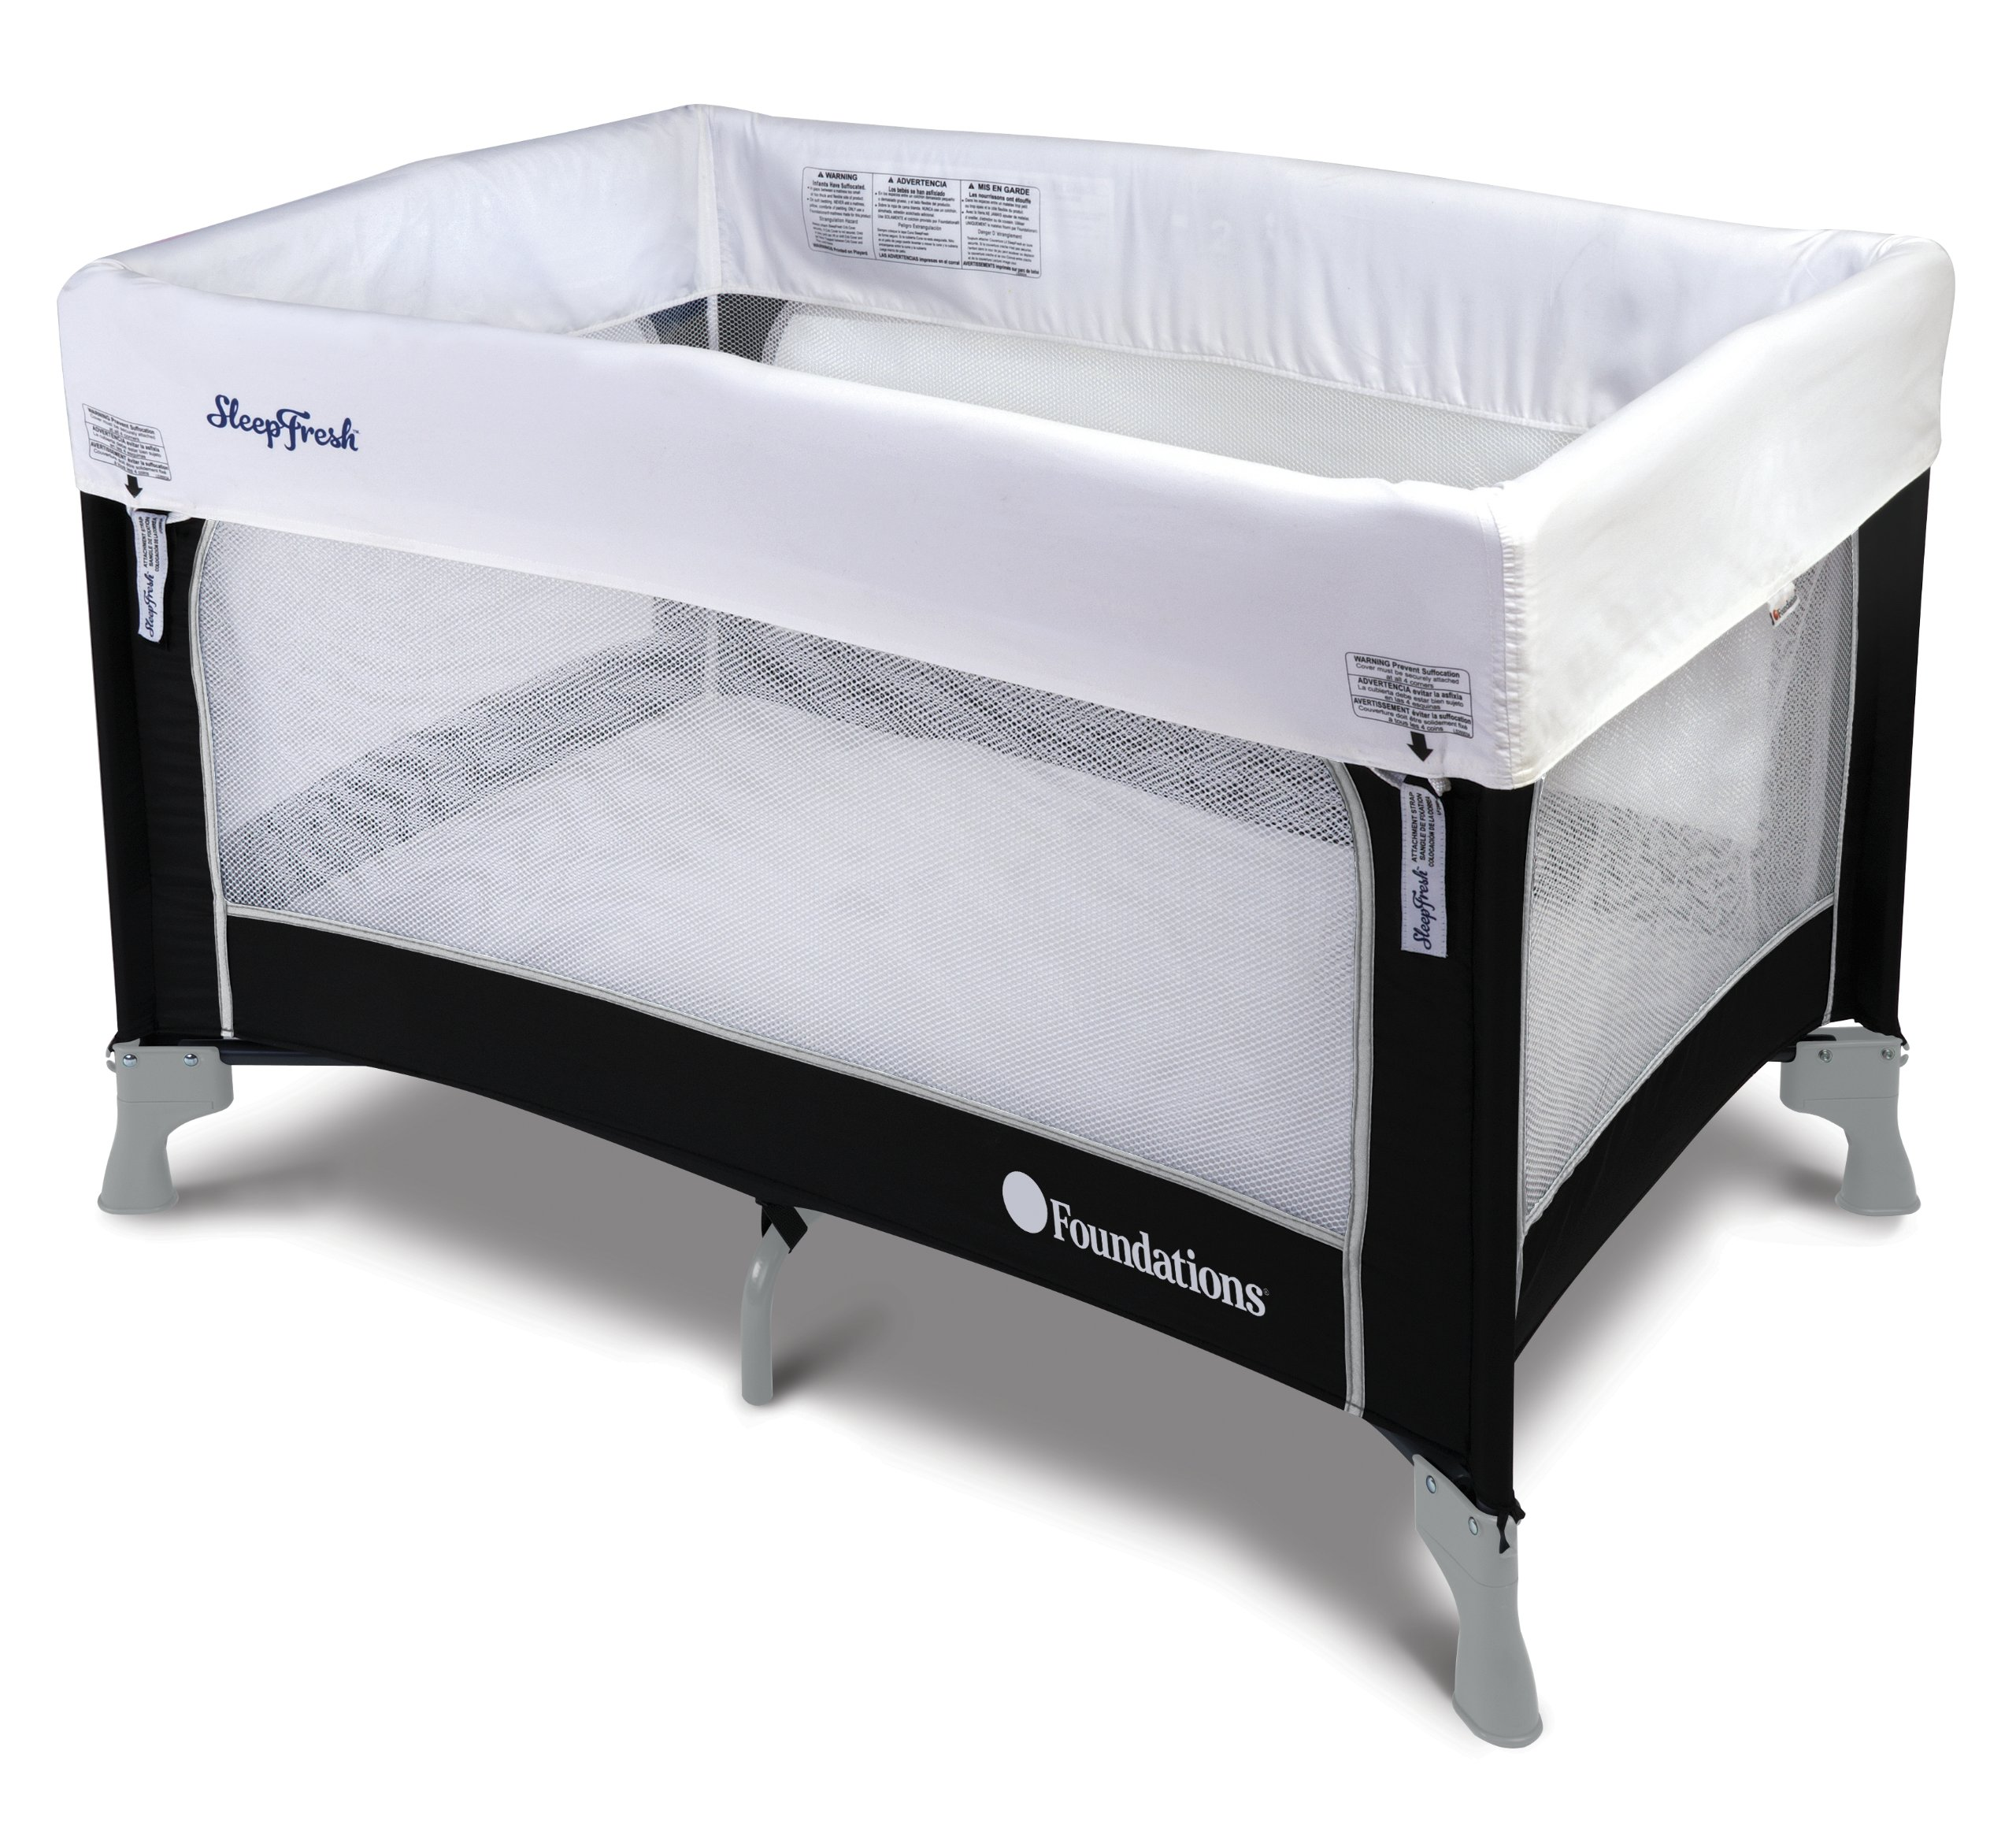 Foundations Worldwide SleepFresh Crib Cover, White, 12 Count by Foundations Worldwide (Image #2)